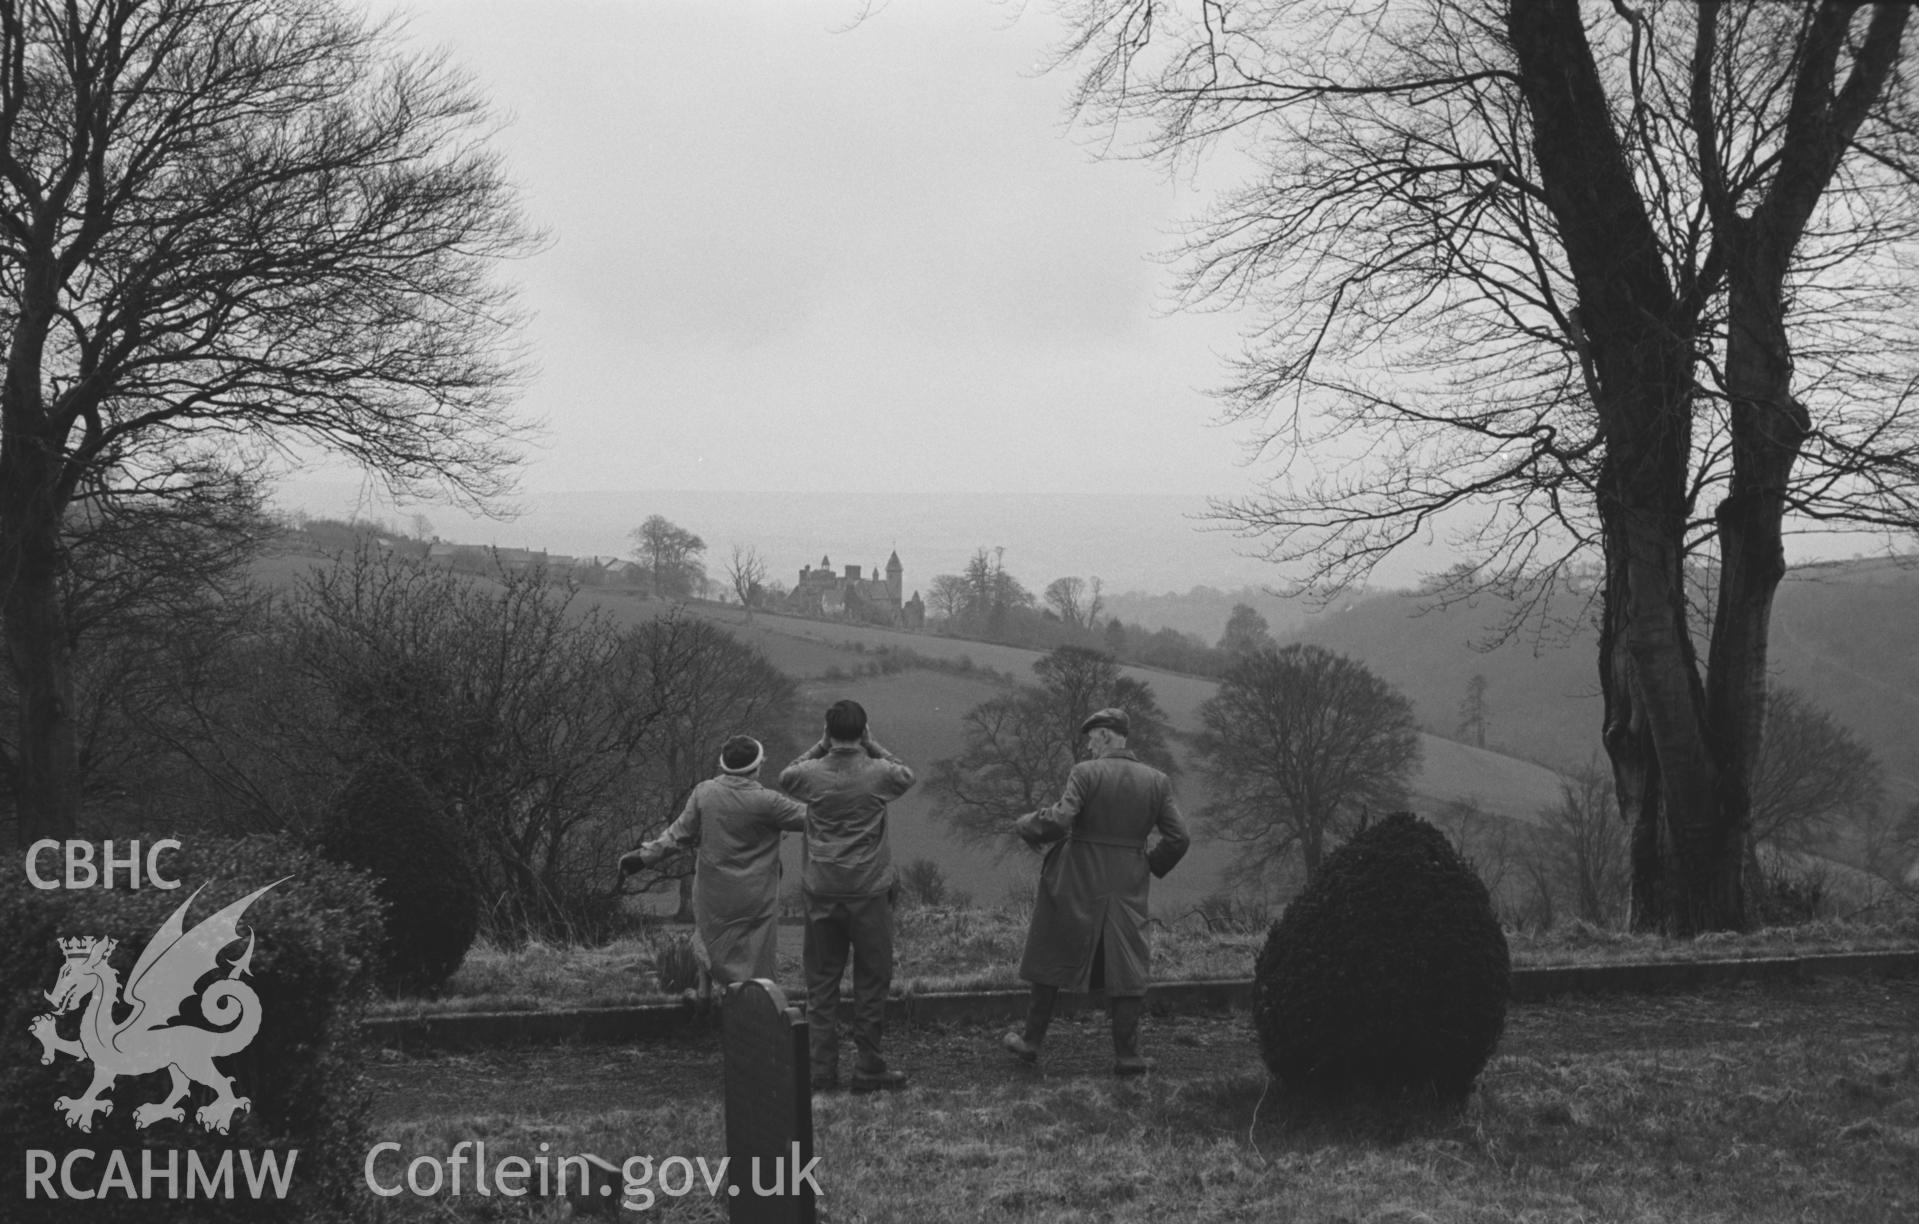 Black and White photograph showing distant view of Bronwydd from Llangynllo churchyard, with three figures. Photographed by Arthur Chater in April 1962, from Grid Reference SN 352 439, looking south.